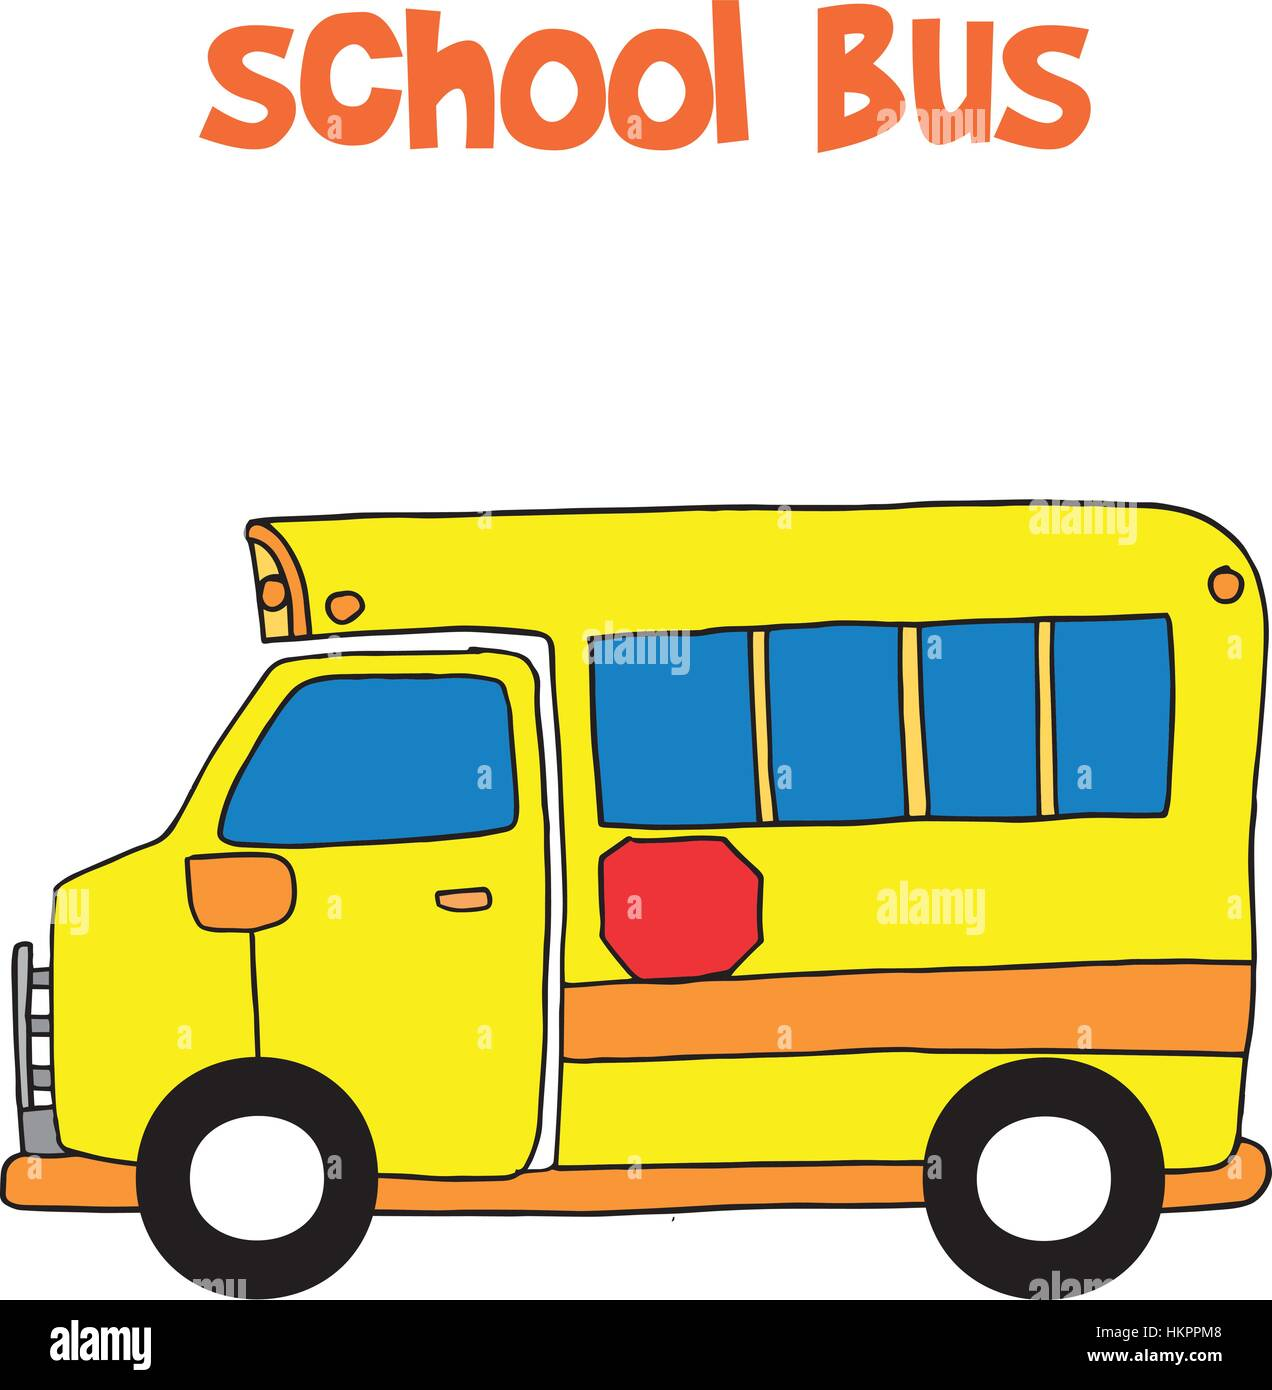 Bus School Cartoon Stock Photos Images Ppm Wiring Diagram For Vector Of Image